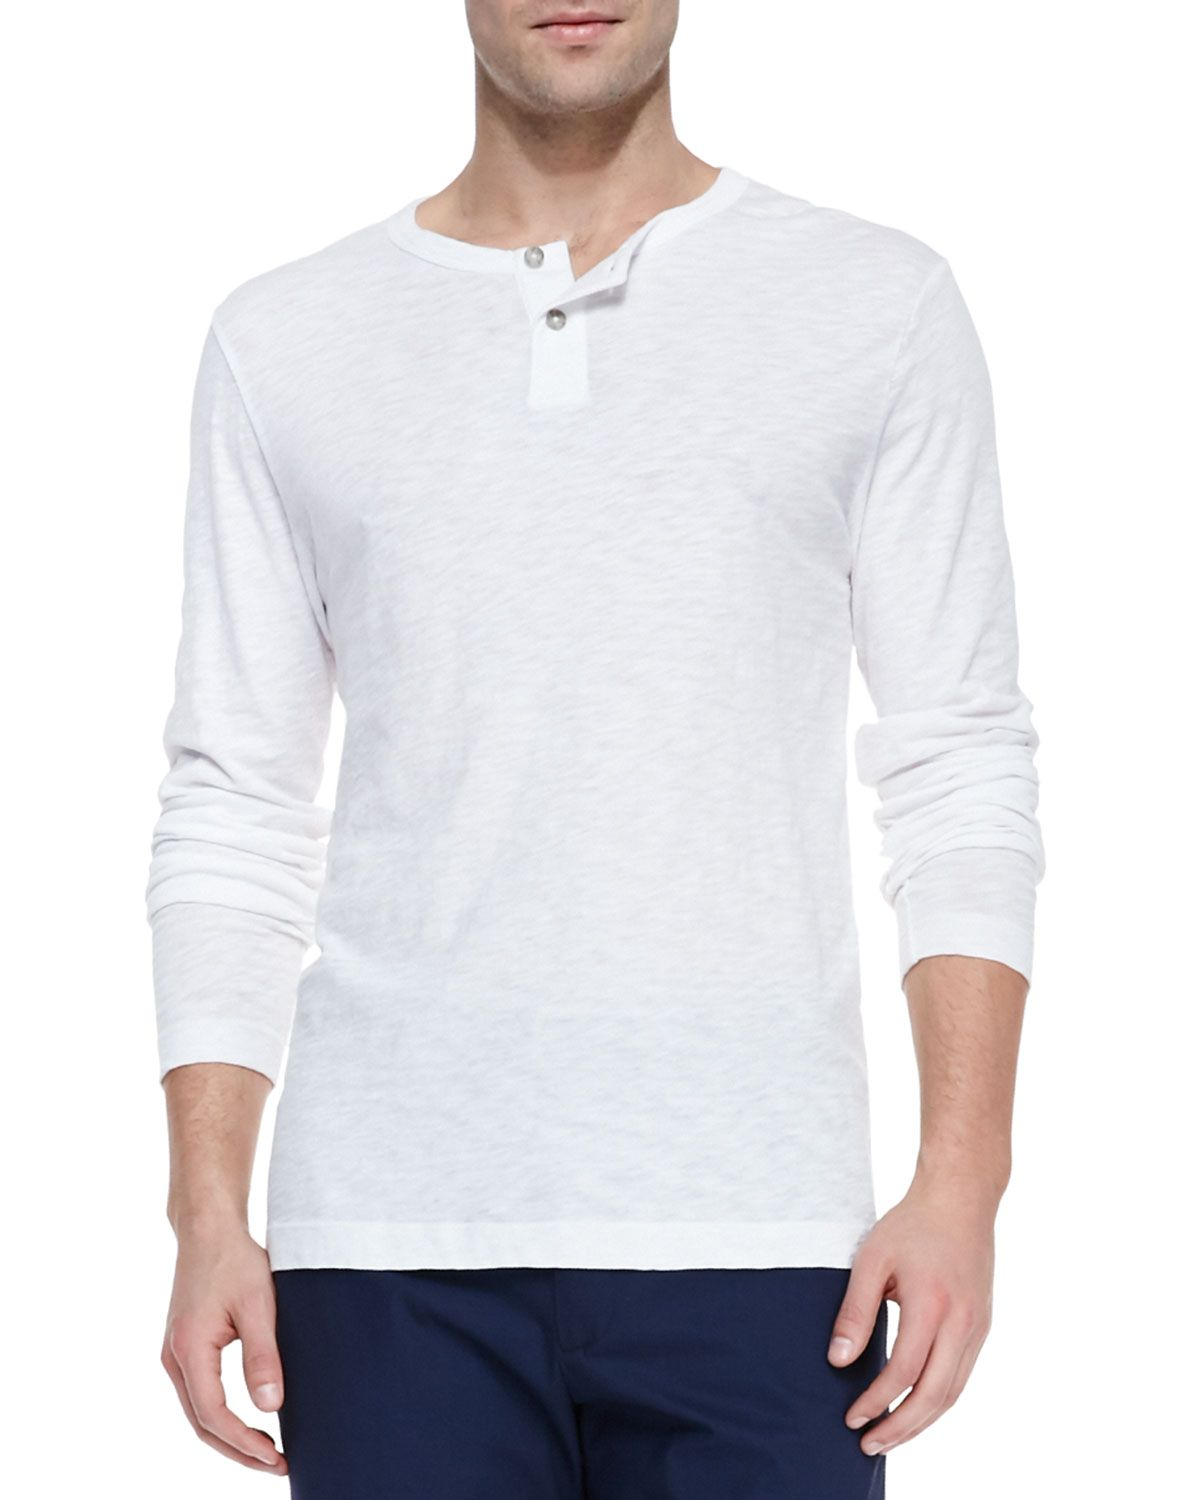 ba7f440f Long-Sleeve Two-Button Henley Shirt, White, Men's, Size: XX-LARGE - Theory